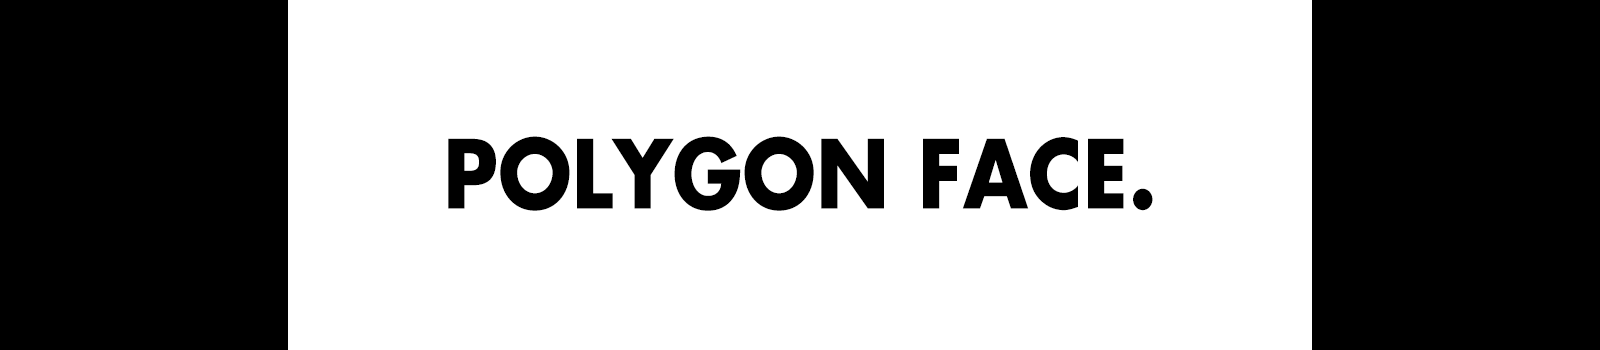 POLYGON FACE.